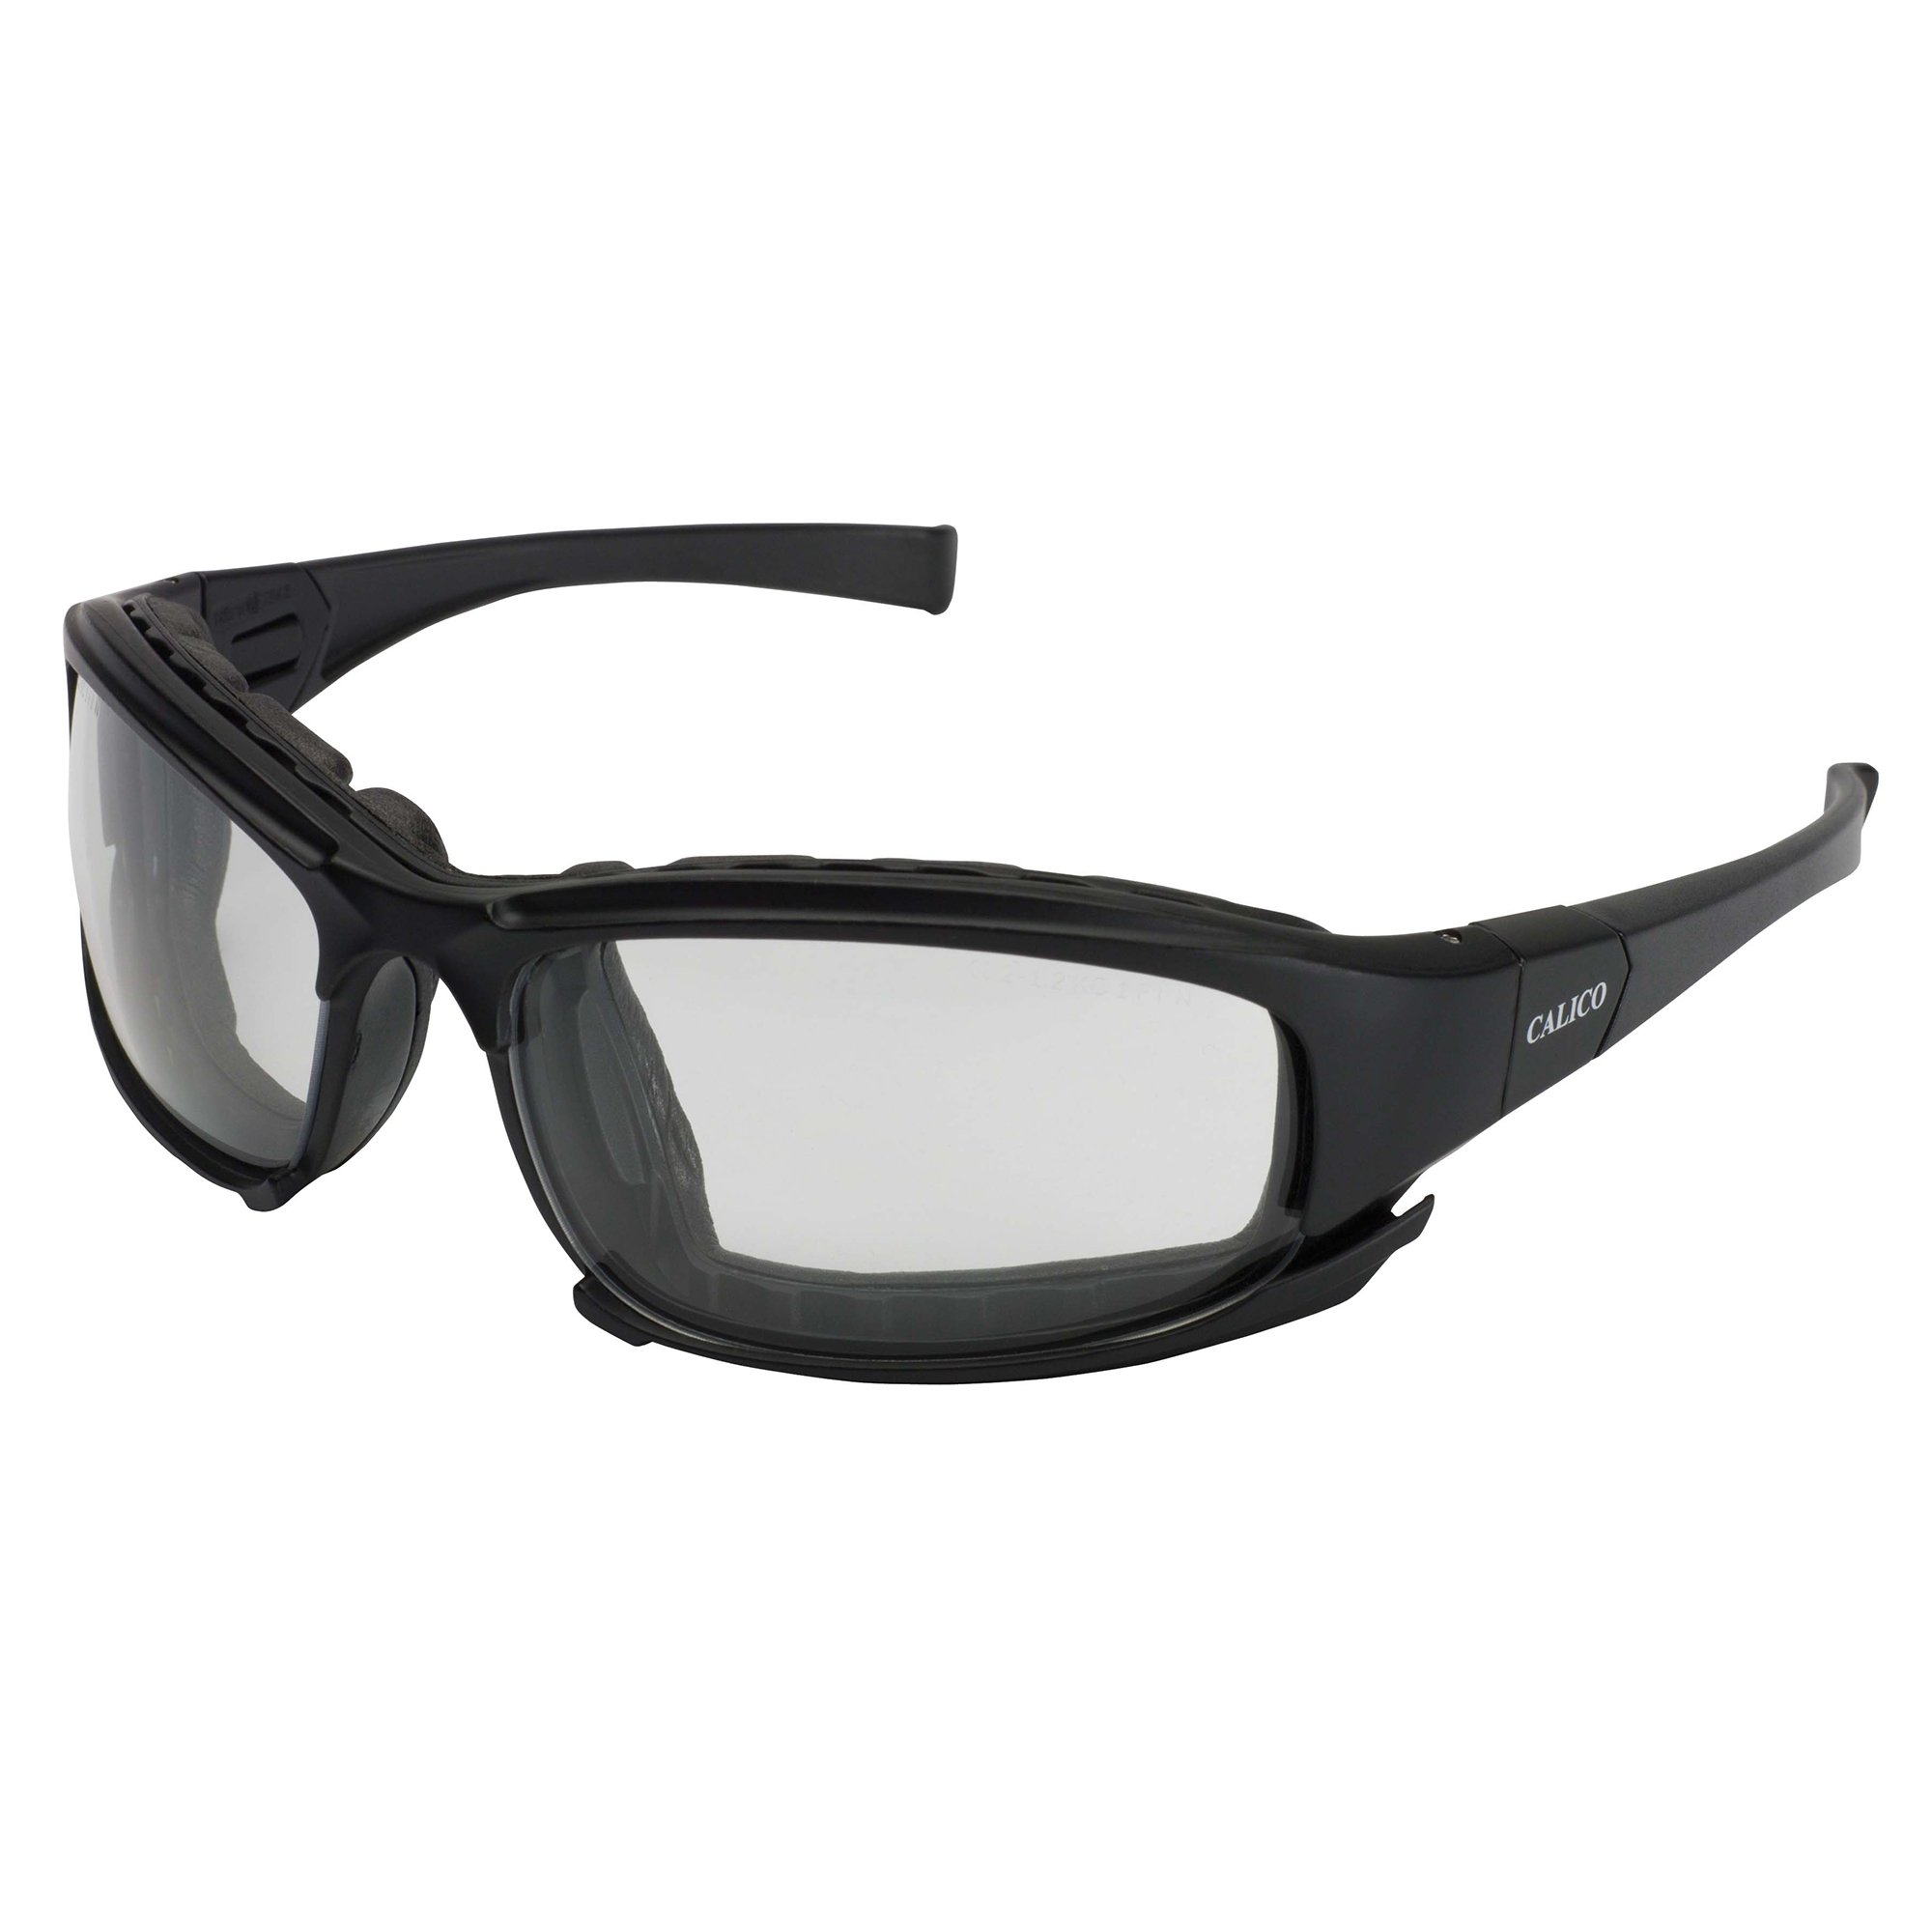 Jackson Safety Calico Safety Eyewear V50 (25672), Clear Anti-Fog Lens with Interchangeable Temples and Head Strap, 12 Pairs / Case